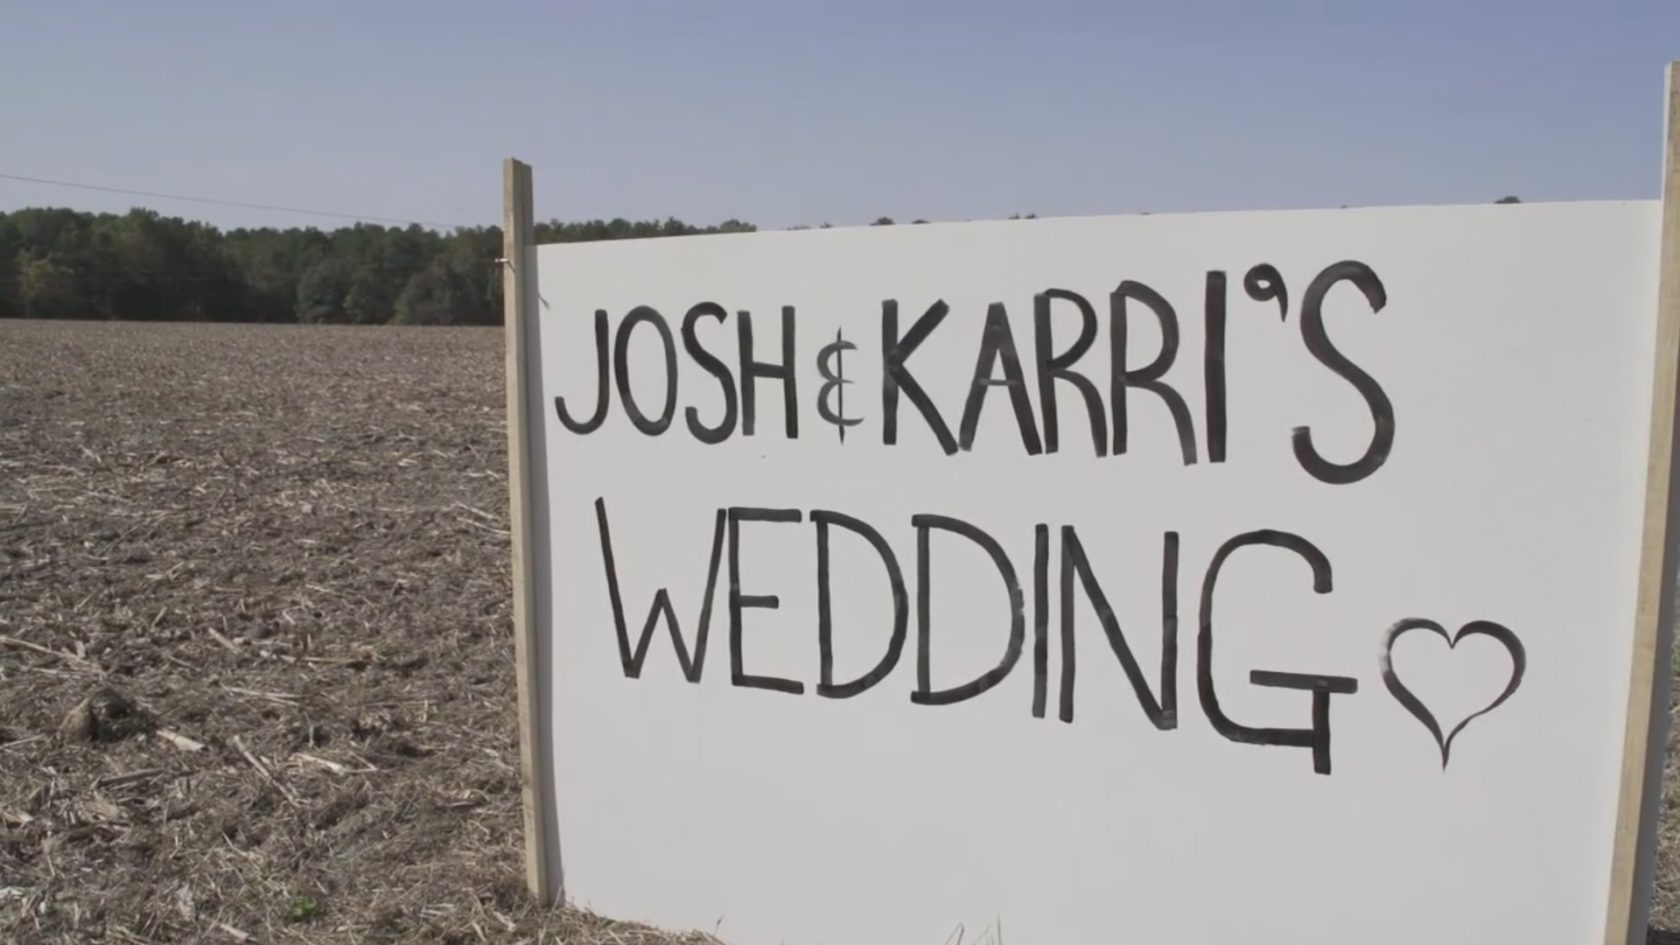 Josh & Karri's Wedding Day